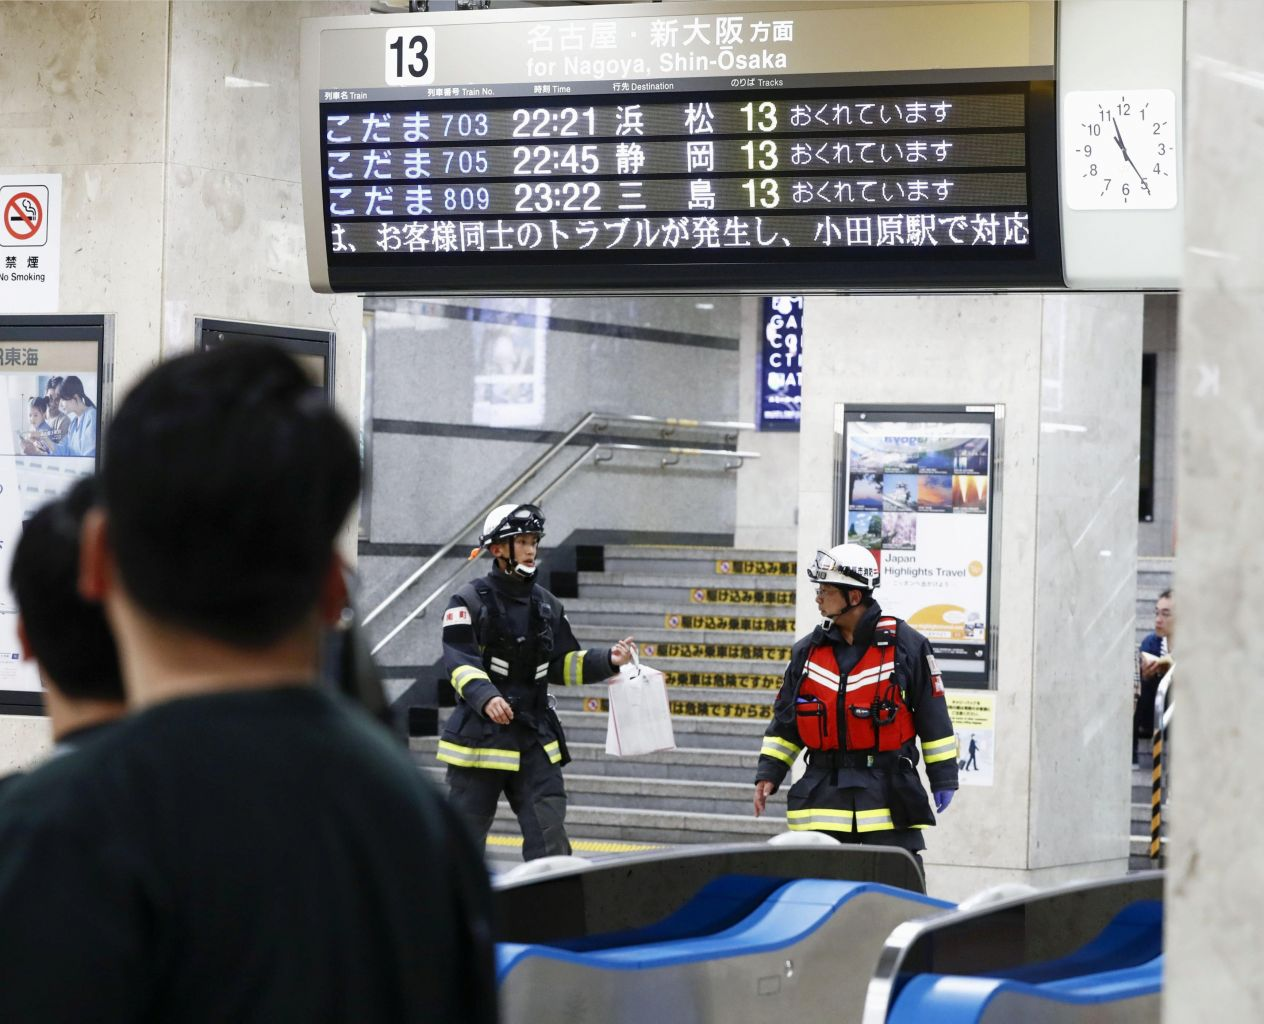 Anyone will do: 22-year-old man nabbed for stabbings on Japan bullet train that left one dead – The Straits Times